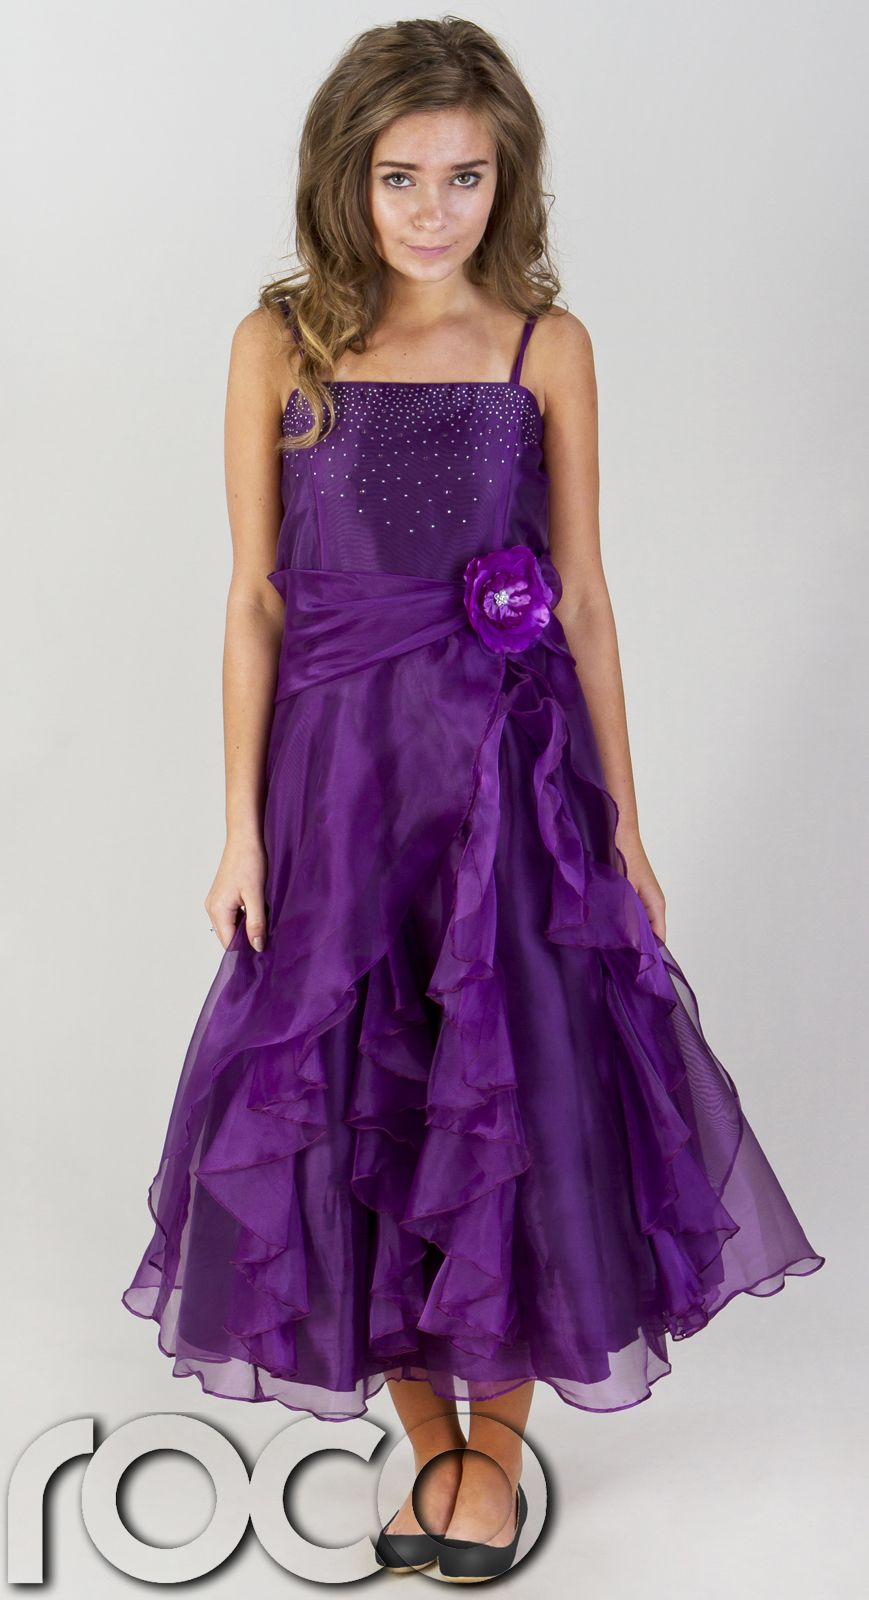 Details zu GIRLS PURPLE WEDDING BRIDESMAID PROM PARTY FLOWER GIRL ...